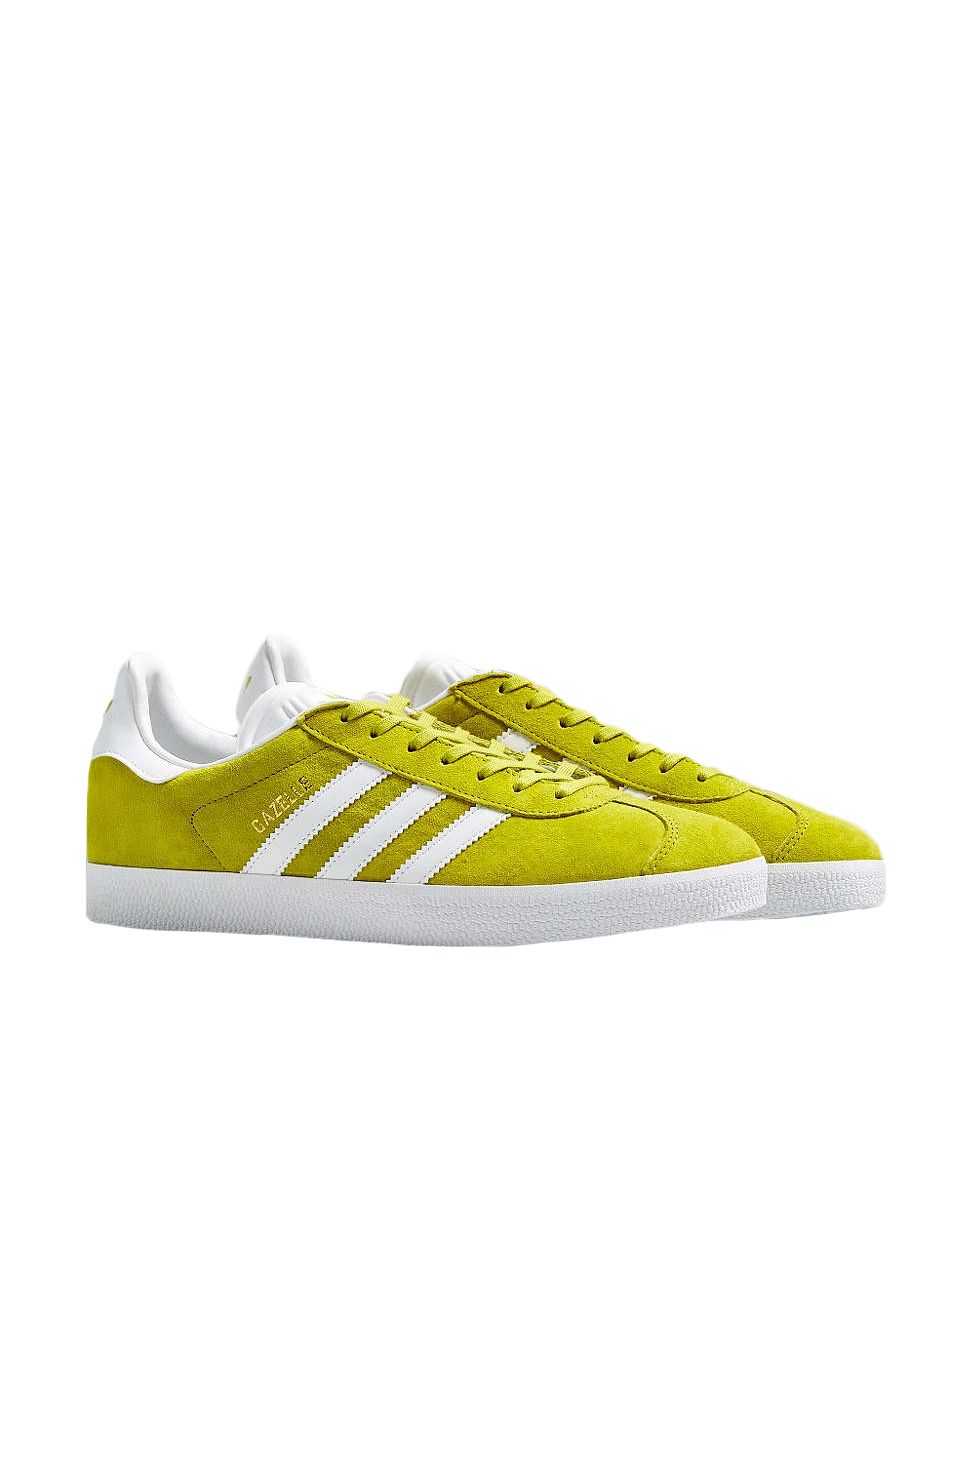 "<p>The Stan Smith might be on its way out, but there's another it-Adidas shoe ready to replace it. The Gazelle, originally released in the '60s, is being resurrected and will be your next <a href=""https://www.westfield.com/products/collection/sneaker-classics?utm_source=Hearst&utm_medium=Elle&utm_content=Sneaker-Classics"" target=""_blank"">go-to sneaker</a>. We predict this citrine yellow color becoming the hardest to get your hands on, thanks in part to its major visibility during the <a target=""_blank"" href=""http://www.elle.com/runway/g28788/3-1-phillip-lim-runway-nyfw-spring-2017/?slide=42&thumbnails="">spring 2017 season.</a> </p><p><em data-verified=""redactor"" data-redactor-tag=""em"">Adidas Gazelle Sneaker, $80; <a href=""http://www.urbanoutfitters.com/urban/catalog/productdetail.jsp?id=38597449&category=SEARCH+RESULTS&color=071"" target=""_blank"" id=""LPlnk199466"" class=""x_OWAAutoLink"">adidas.com</a></em></p><p>For more shop at <a href=""https://www.westfield.com/products/collection/sneaker-classics?utm_source=Hearst&utm_medium=Elle&utm_content=Sneaker-Classics"" target=""_blank"">Westfield</a></p>"